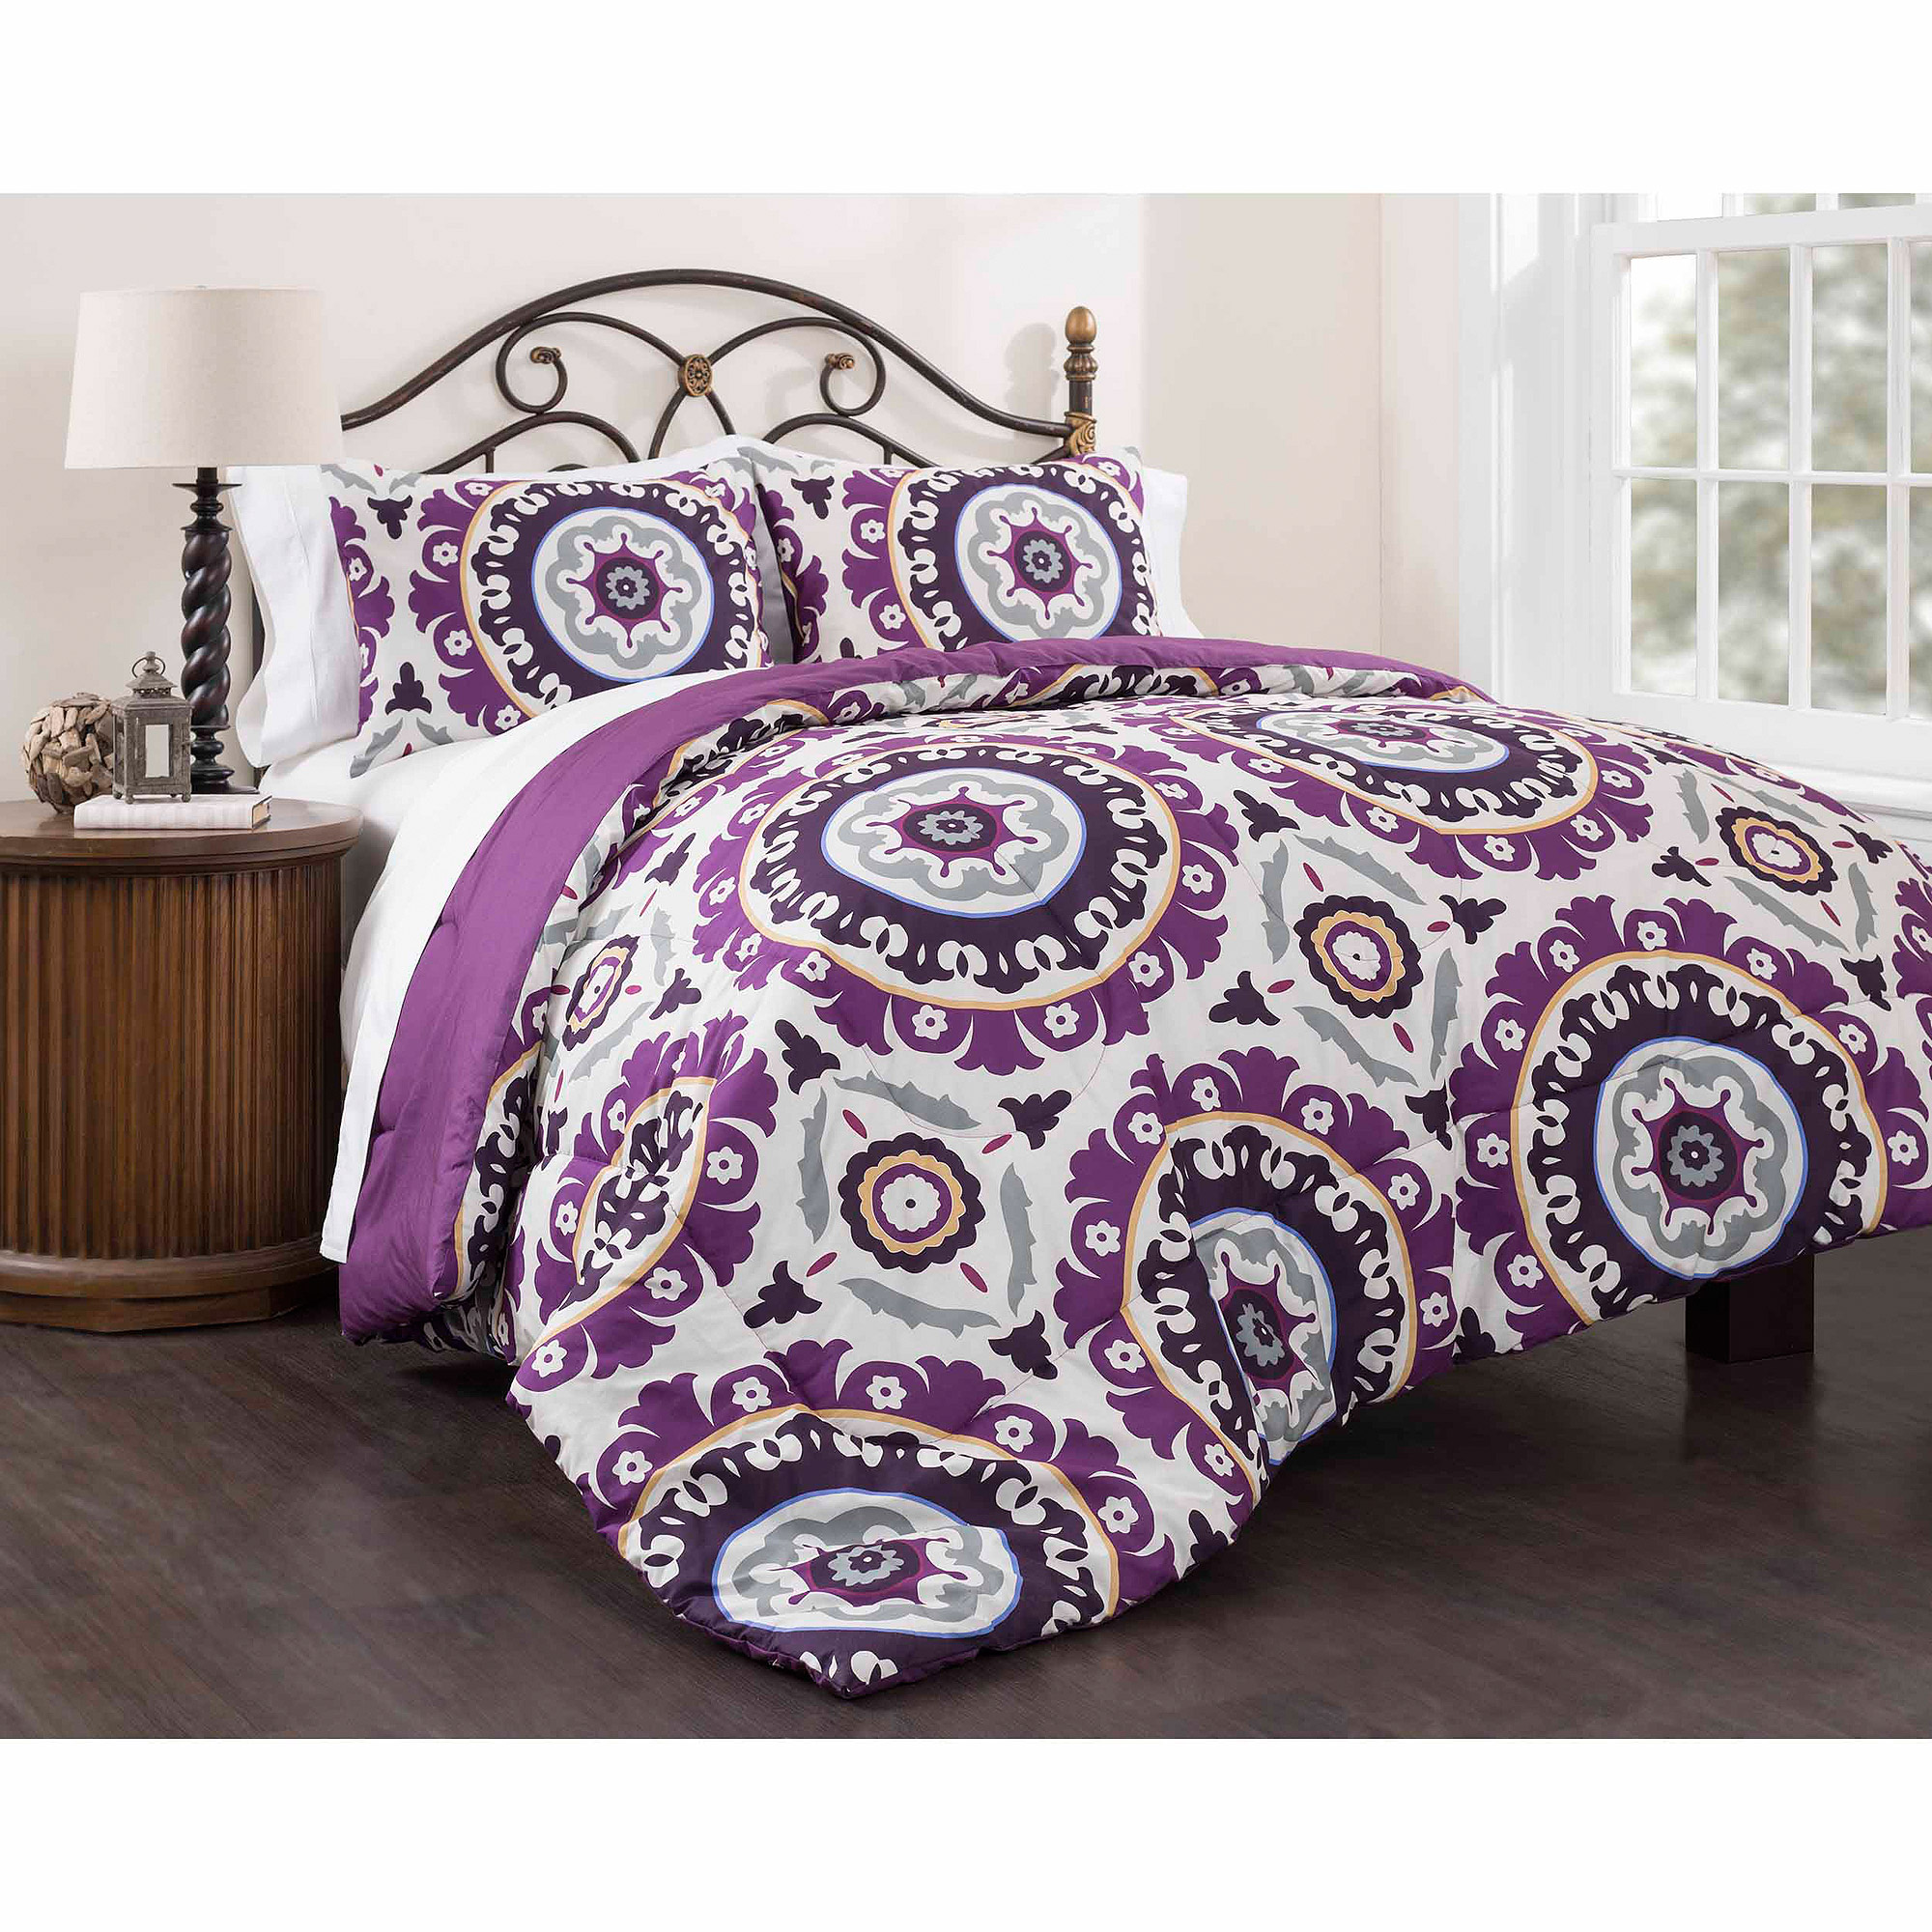 lilac bed piece comforter bath wayfair reviews mariana pdx set